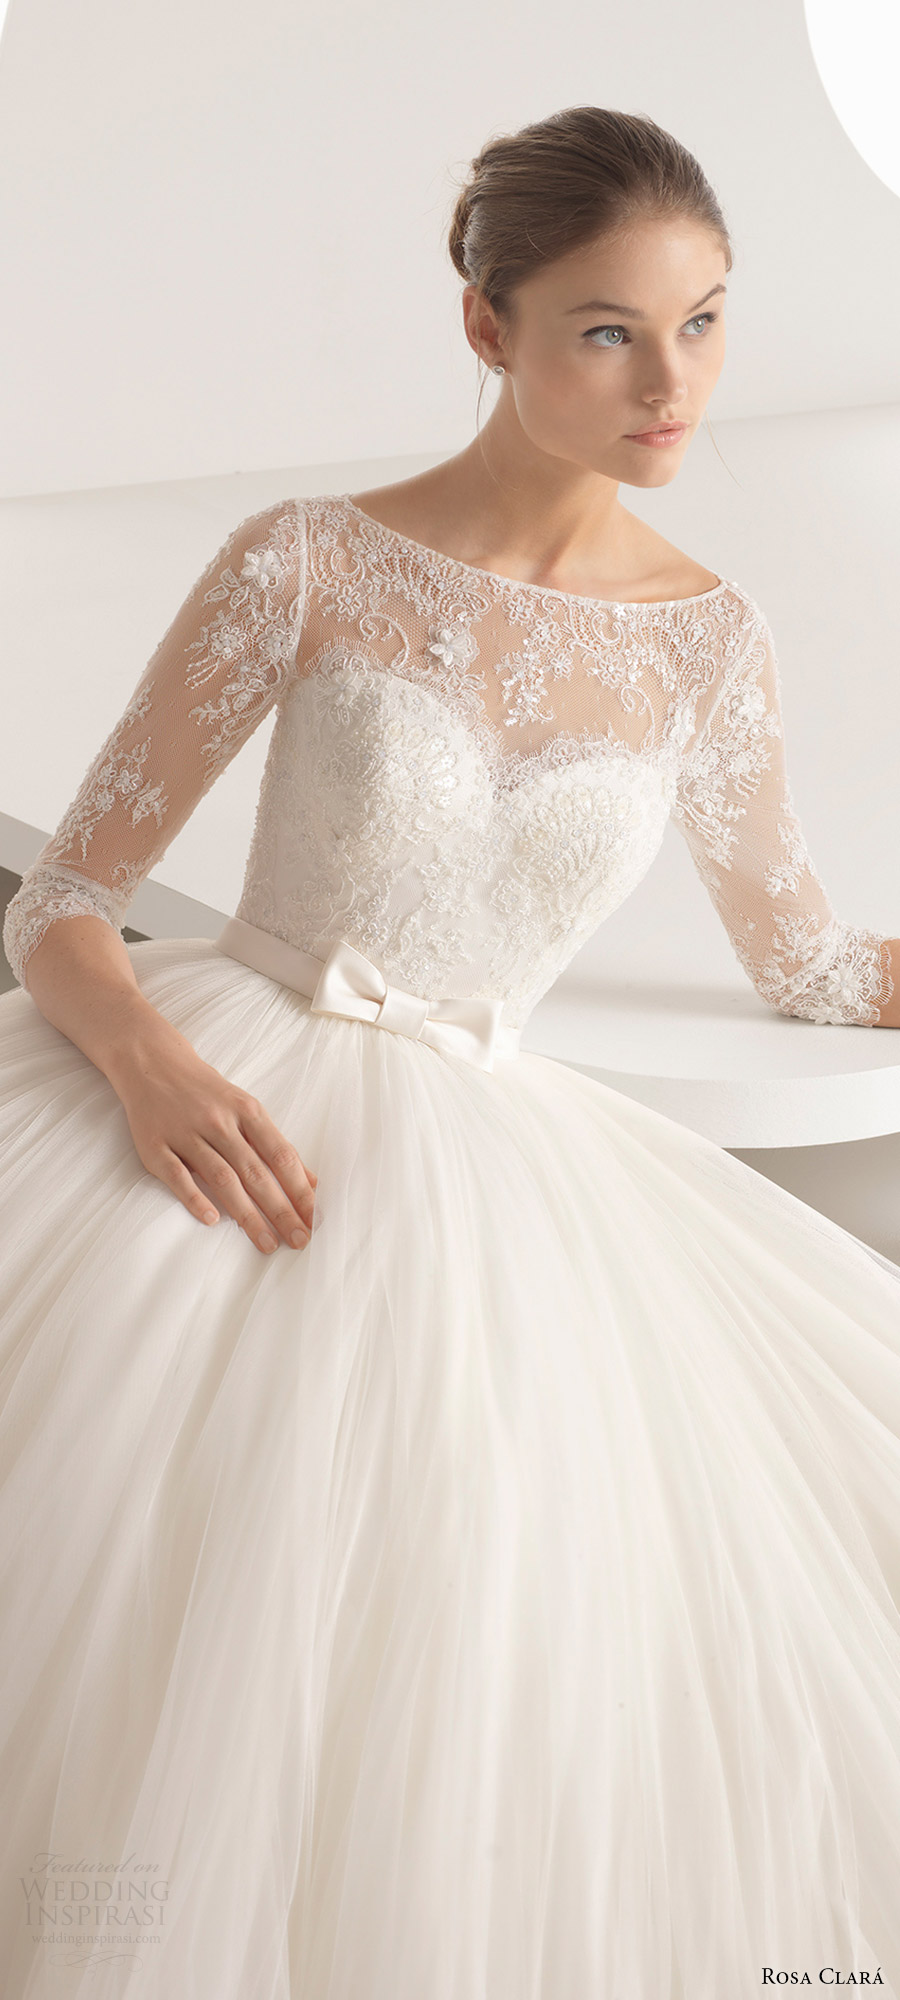 116c39de3b rosa clara 2018 bridal trends 3 quarter illusion sleeves bateau neck lace  bodice ball gown wedding